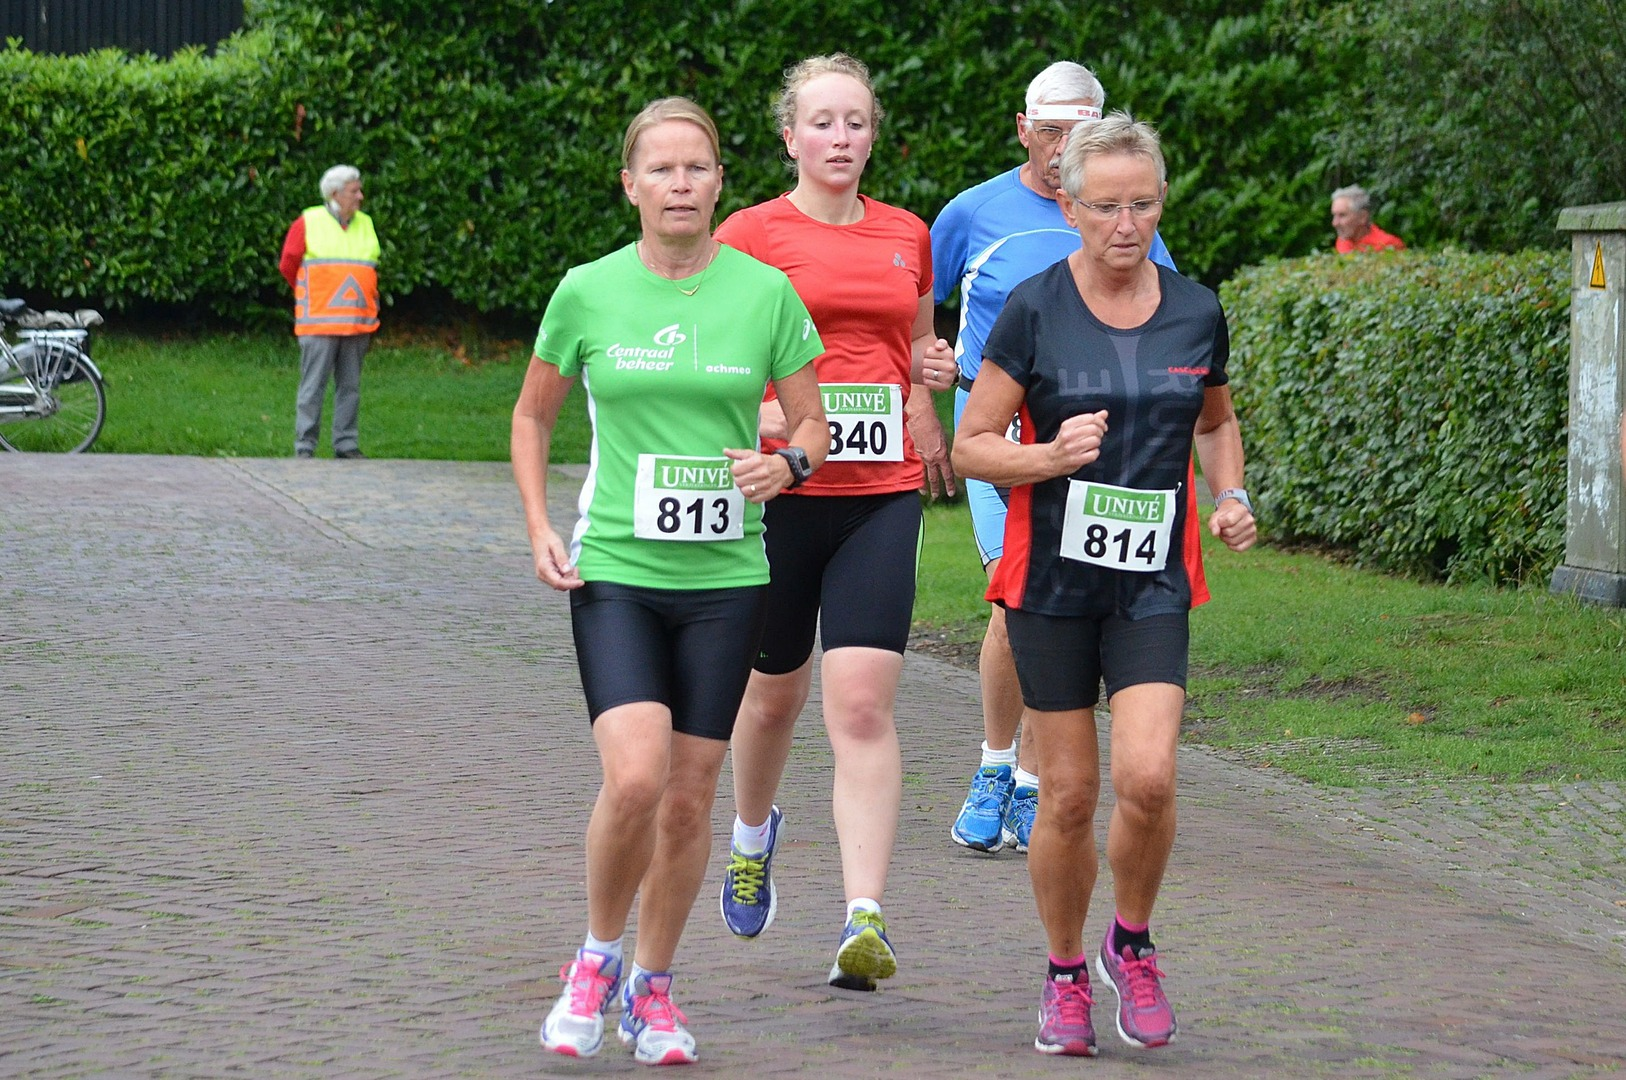 1-Jetty-Willemien